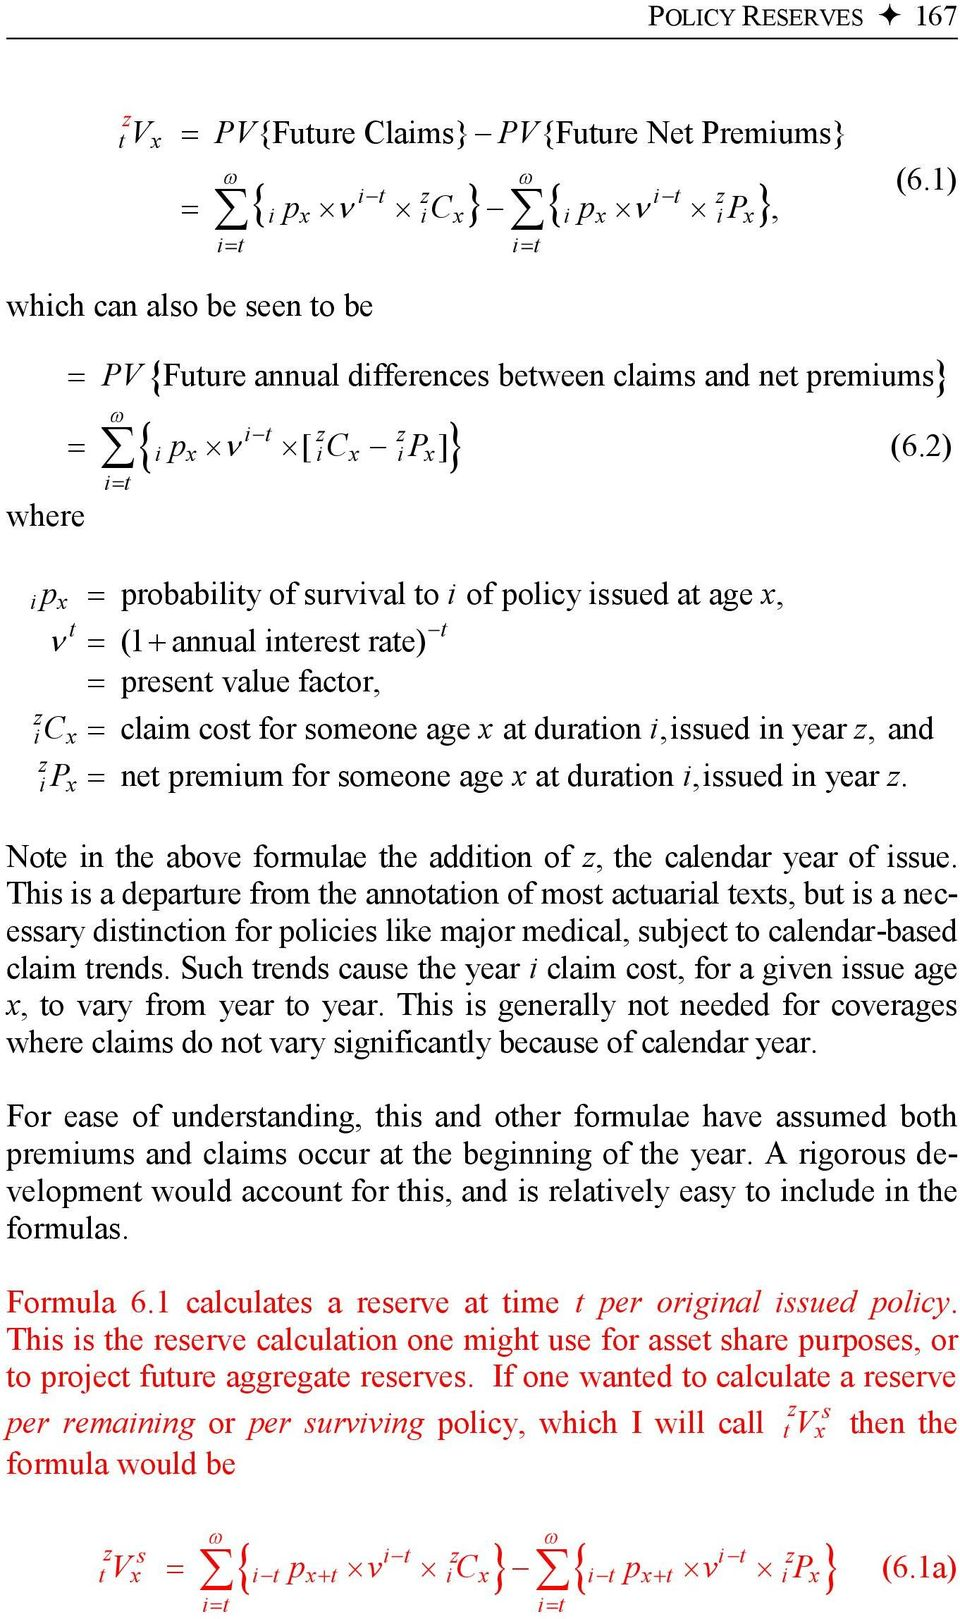 2) i p probabiliy of survival o i of policy issued a age, i i C claim cos for someone age a duraion i,issued in year, and P ne premium for someone age a duraion i,issued in year.